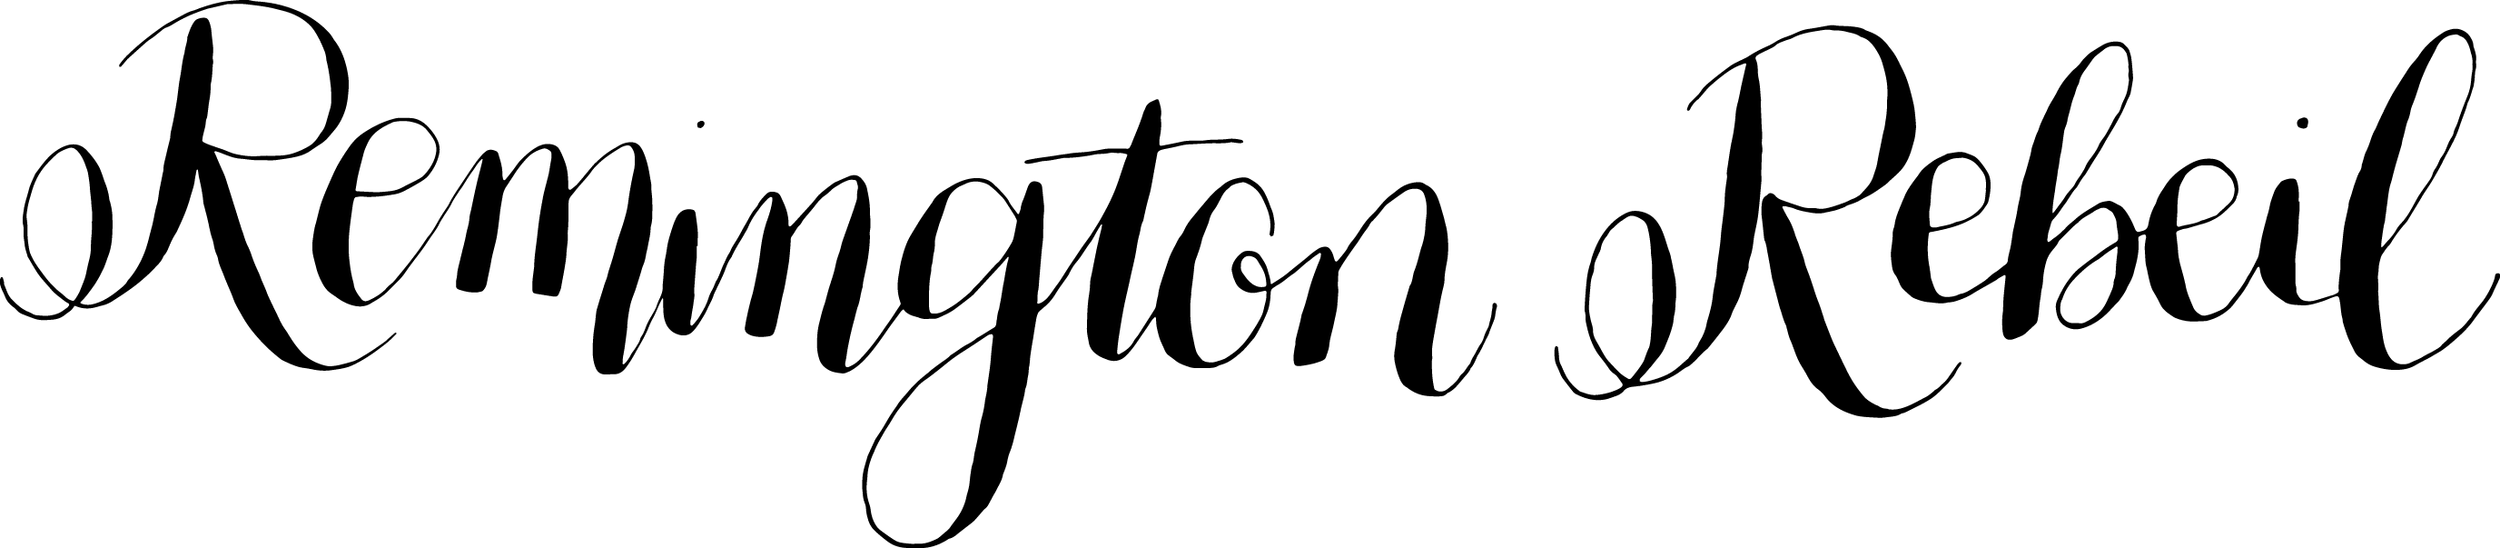 Calligraphy Logo Name for a Client - Pointed Pen